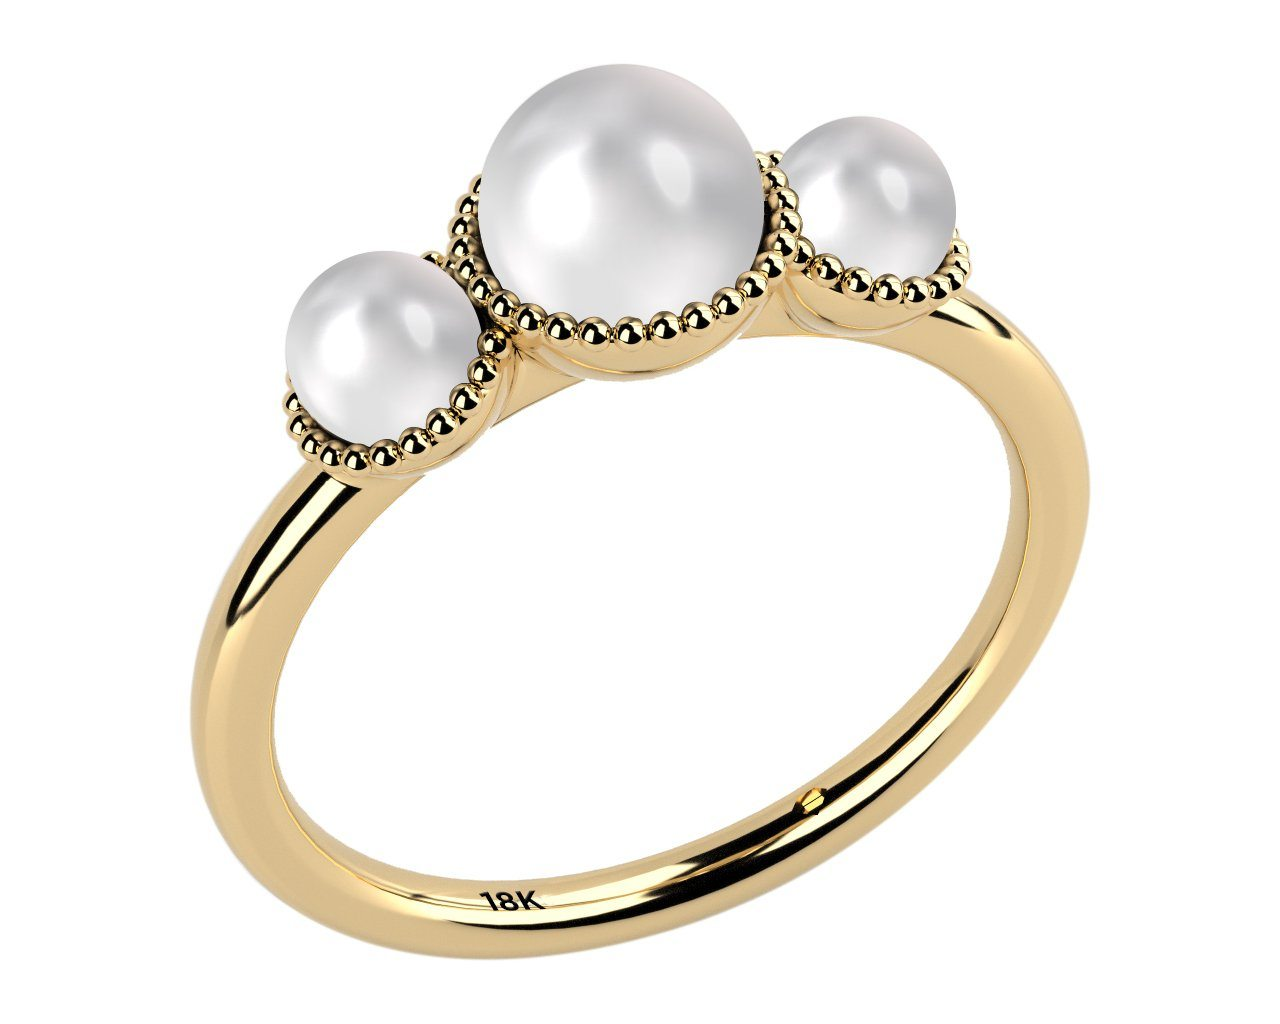 white, three stone aaa cultured freshwater pearl 18k yellow gold ring